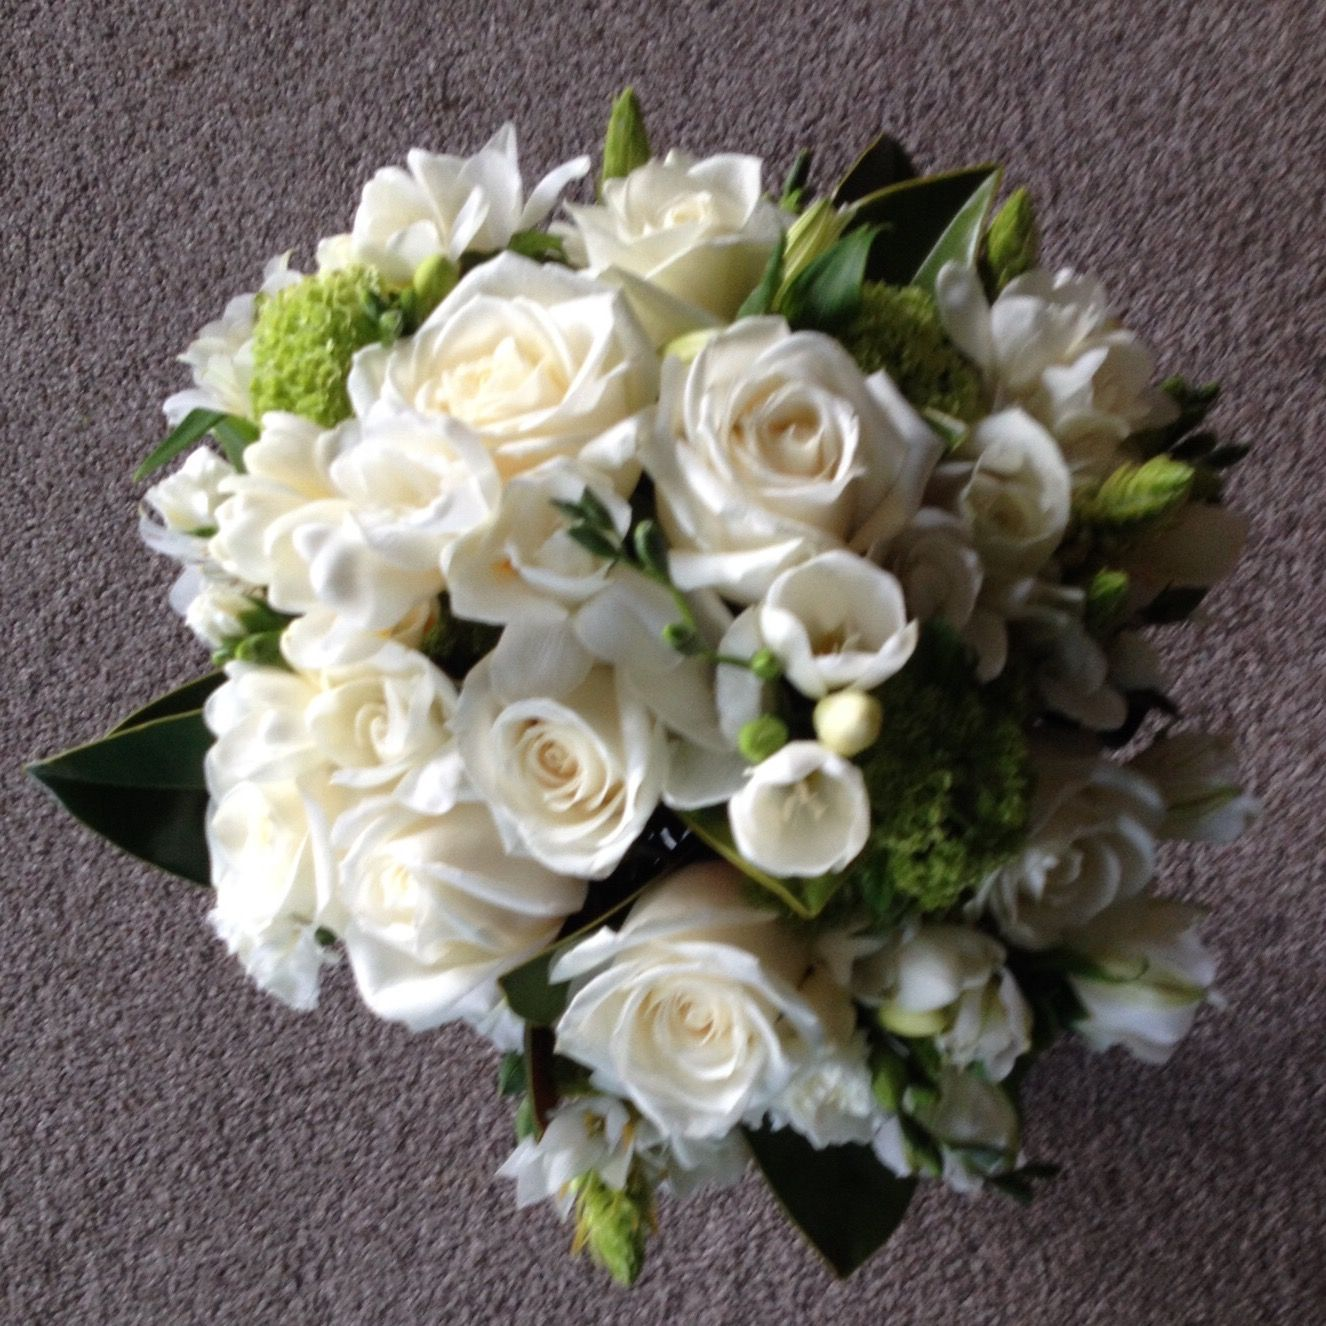 Brides Bouquet Green And White Roses Snowball Tree Freesias